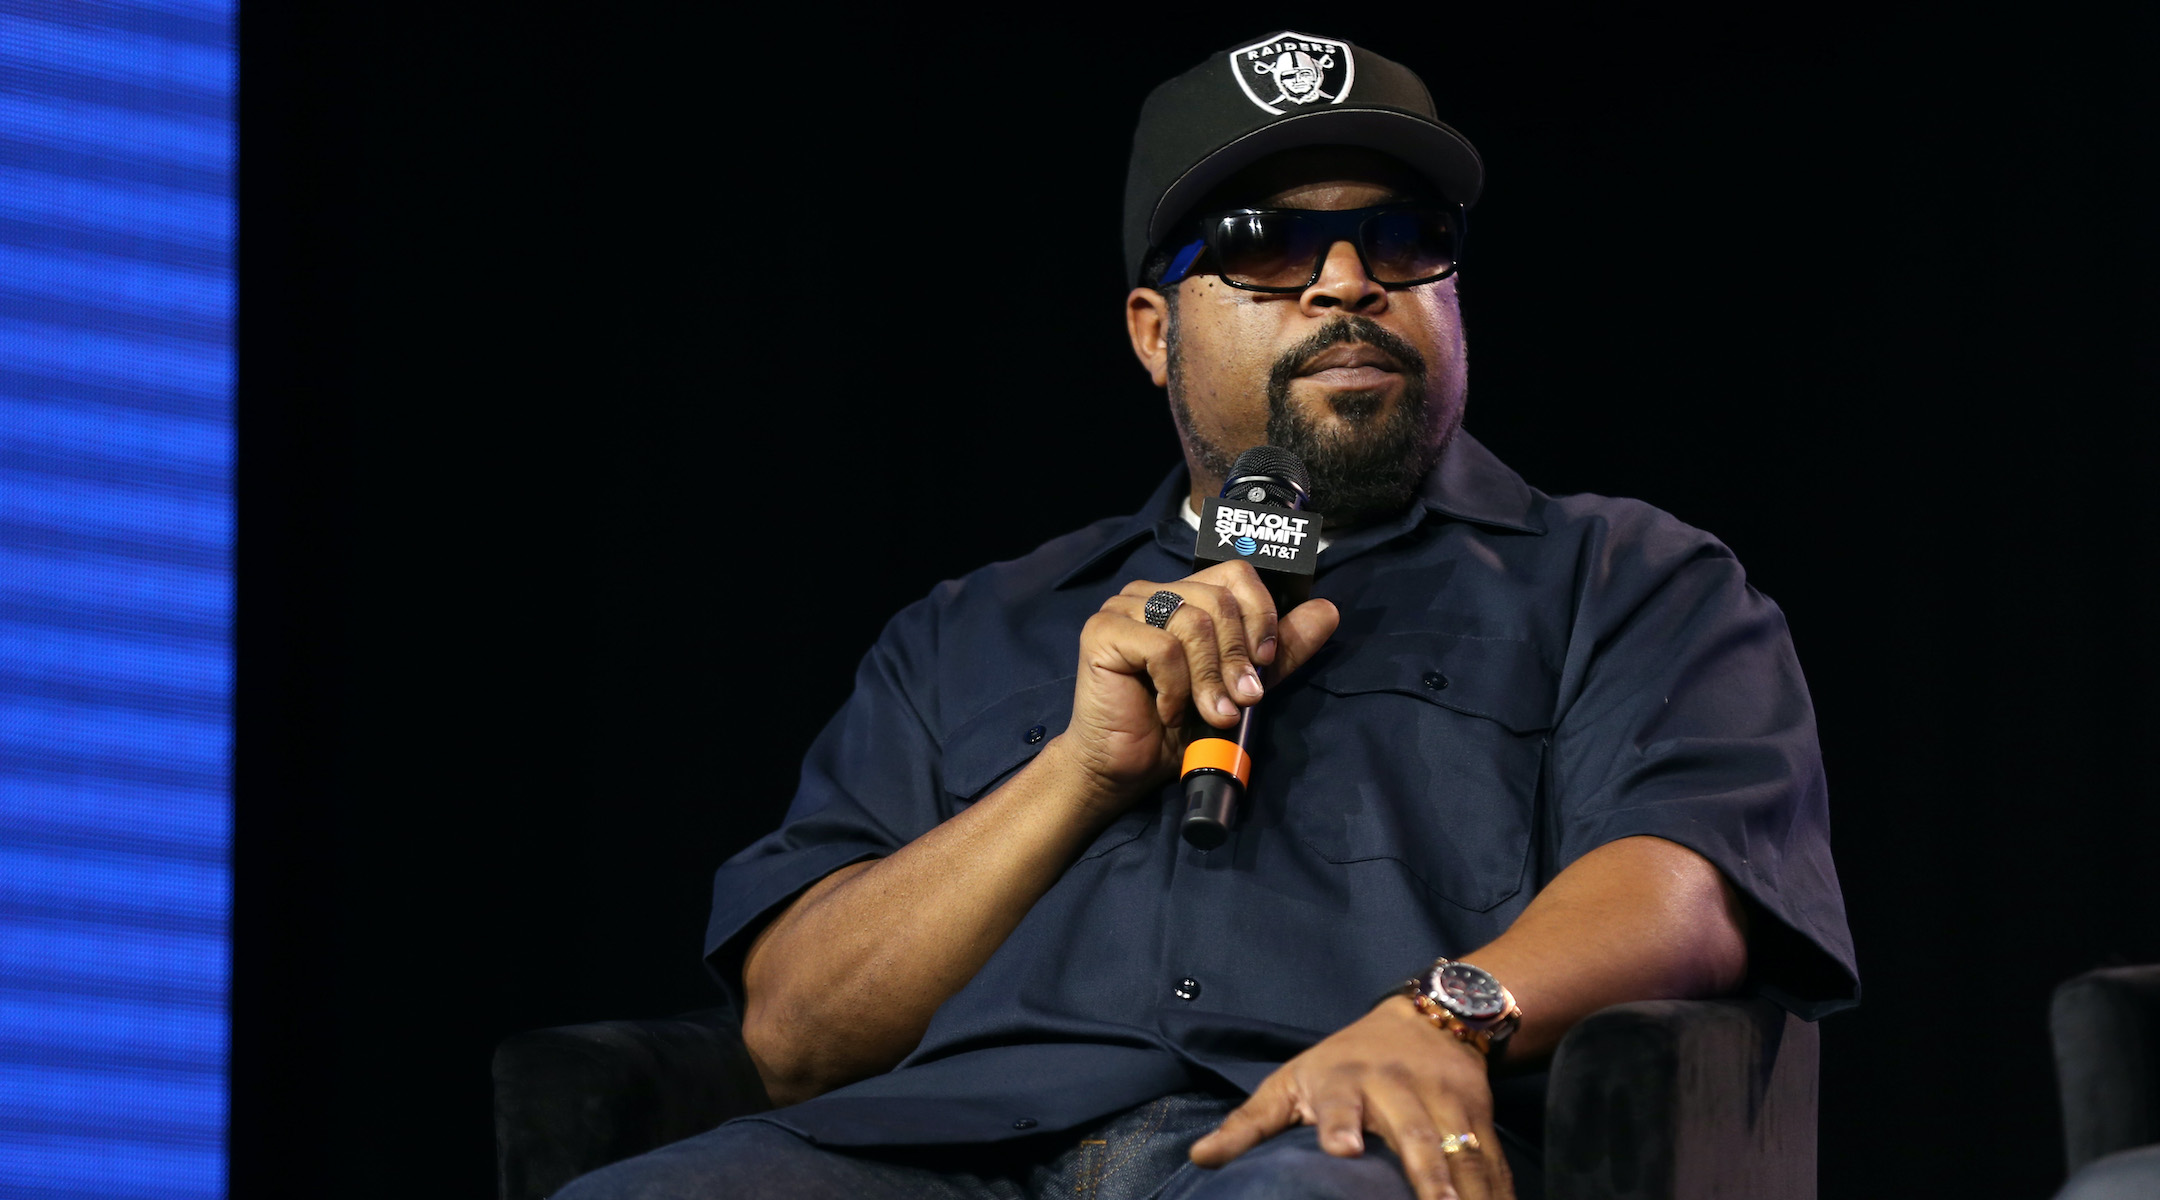 Rapper Ice Cube slams Kareem Abdul-Jabbar for calling out anti-Semitic social media posts